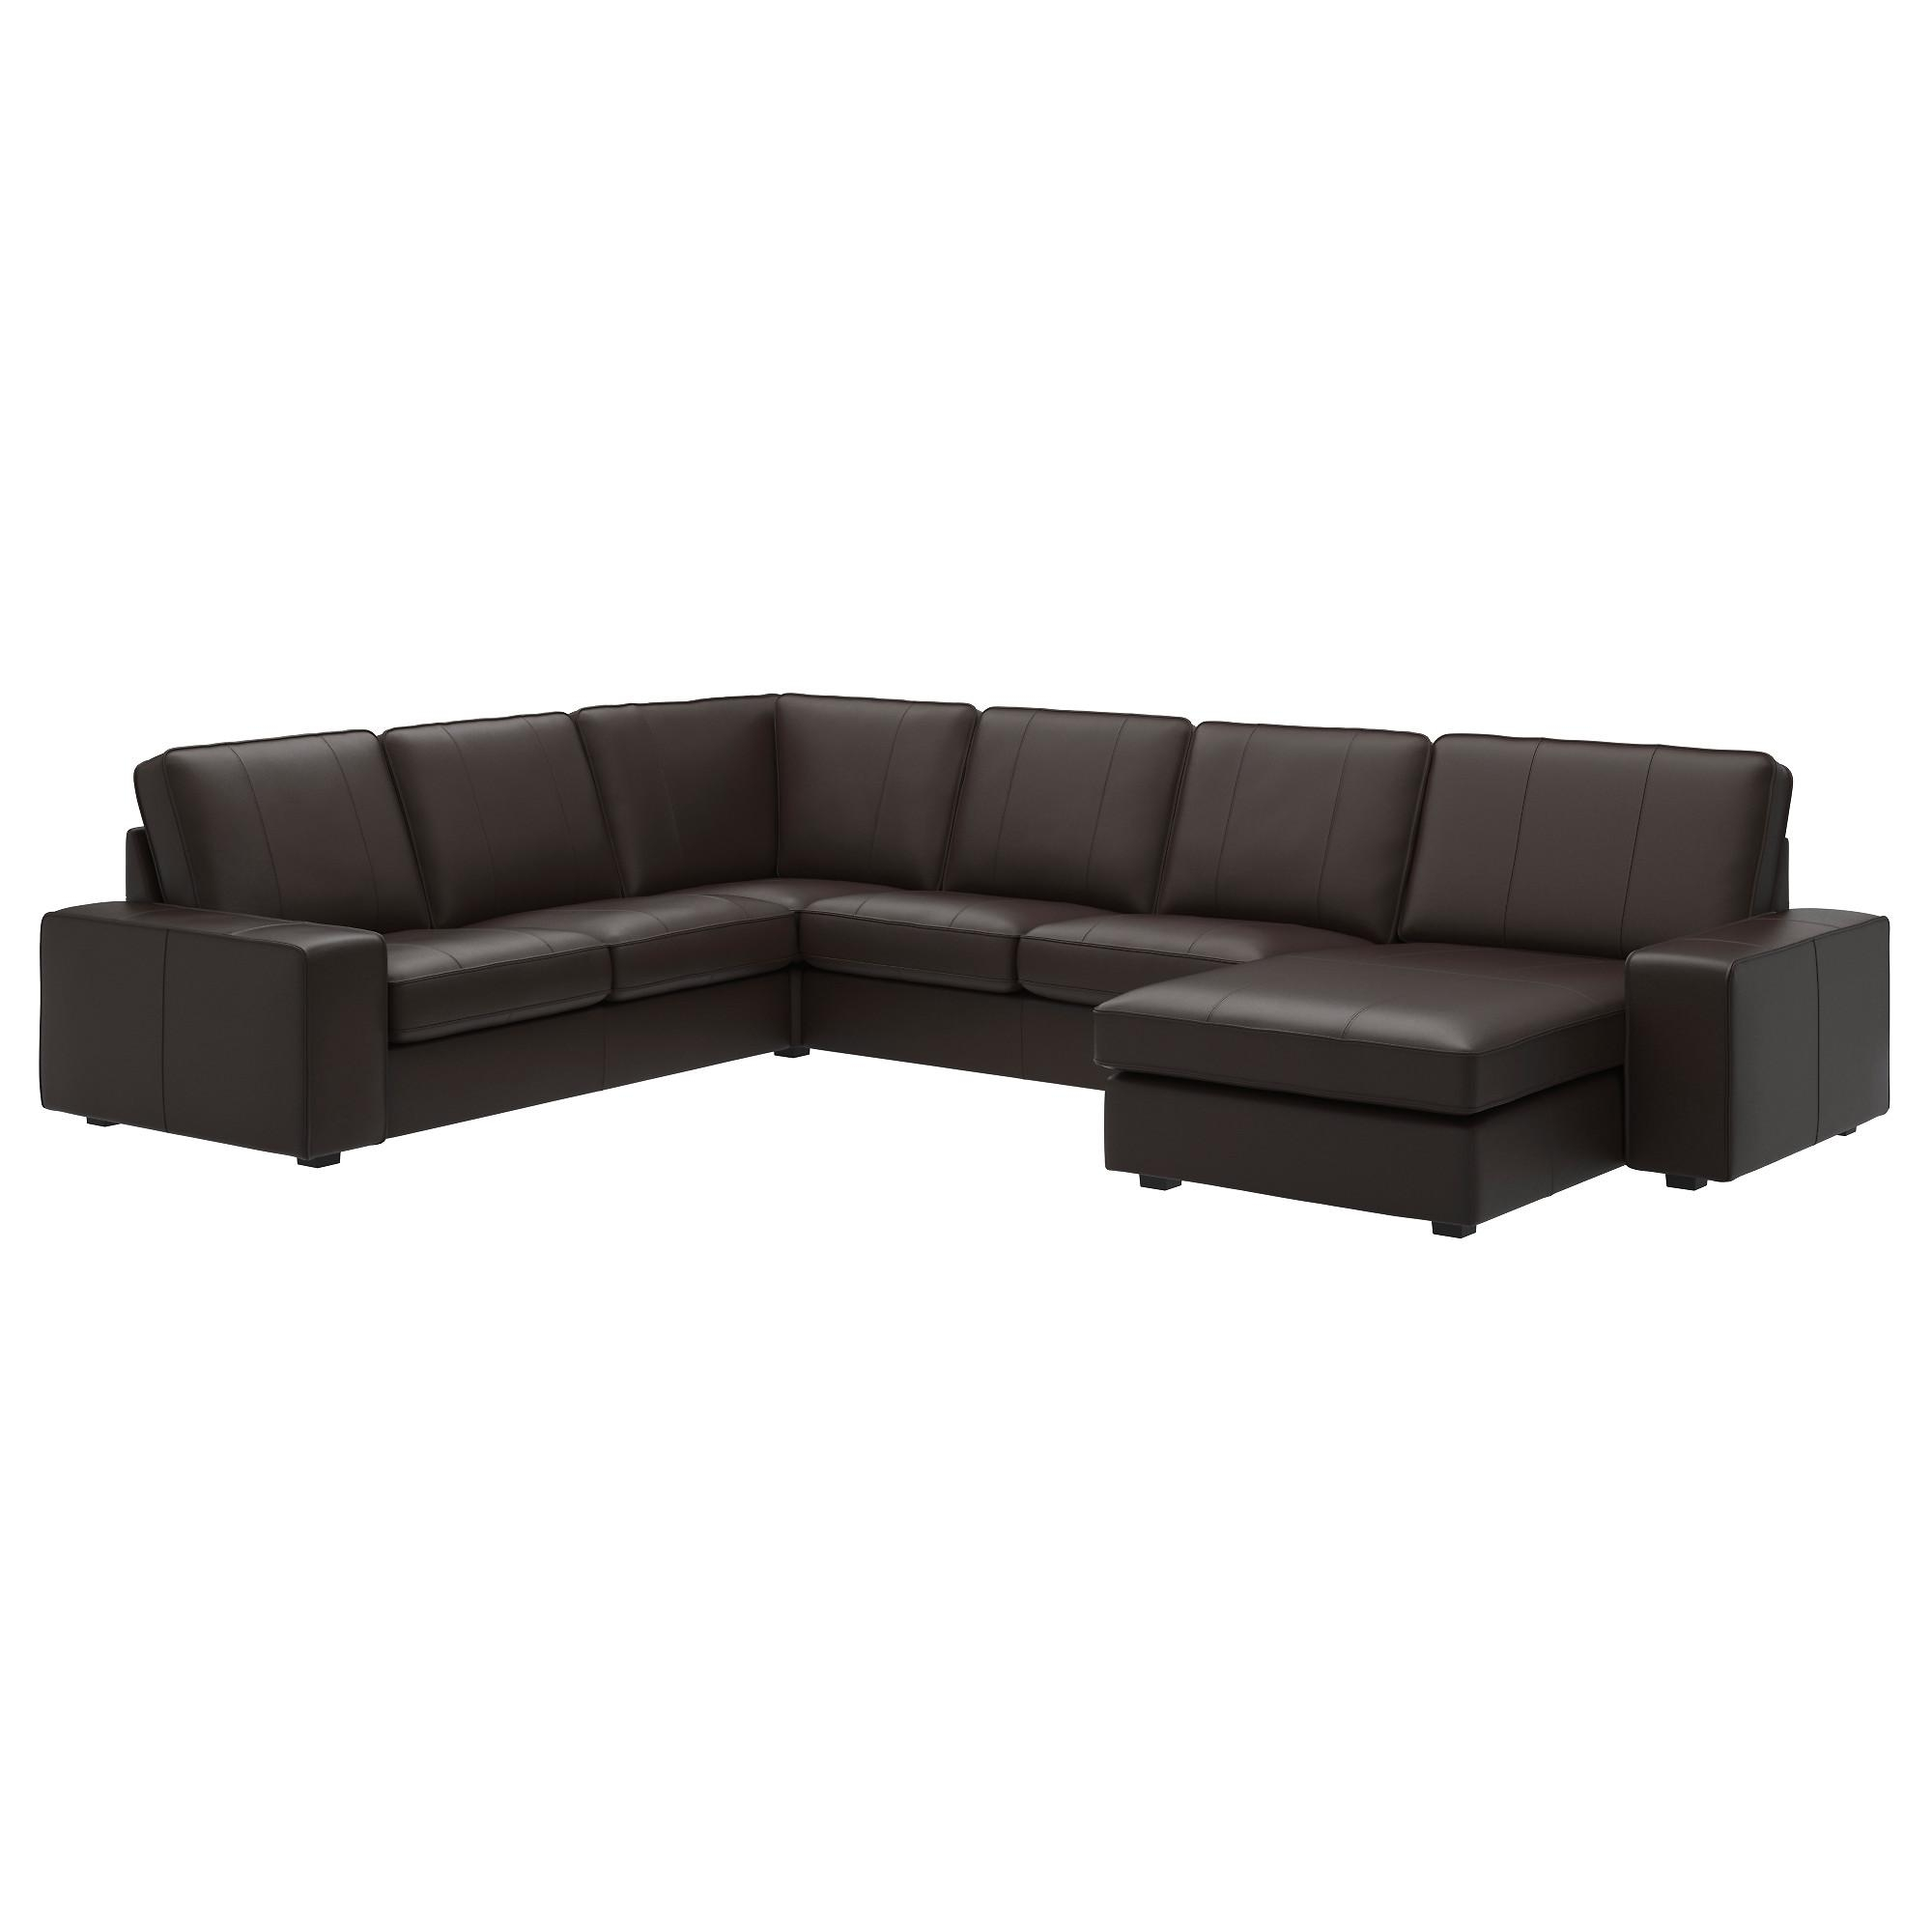 Sectional Sofas & Couches – Ikea With Regard To Long Chaise Sofa (Image 16 of 20)